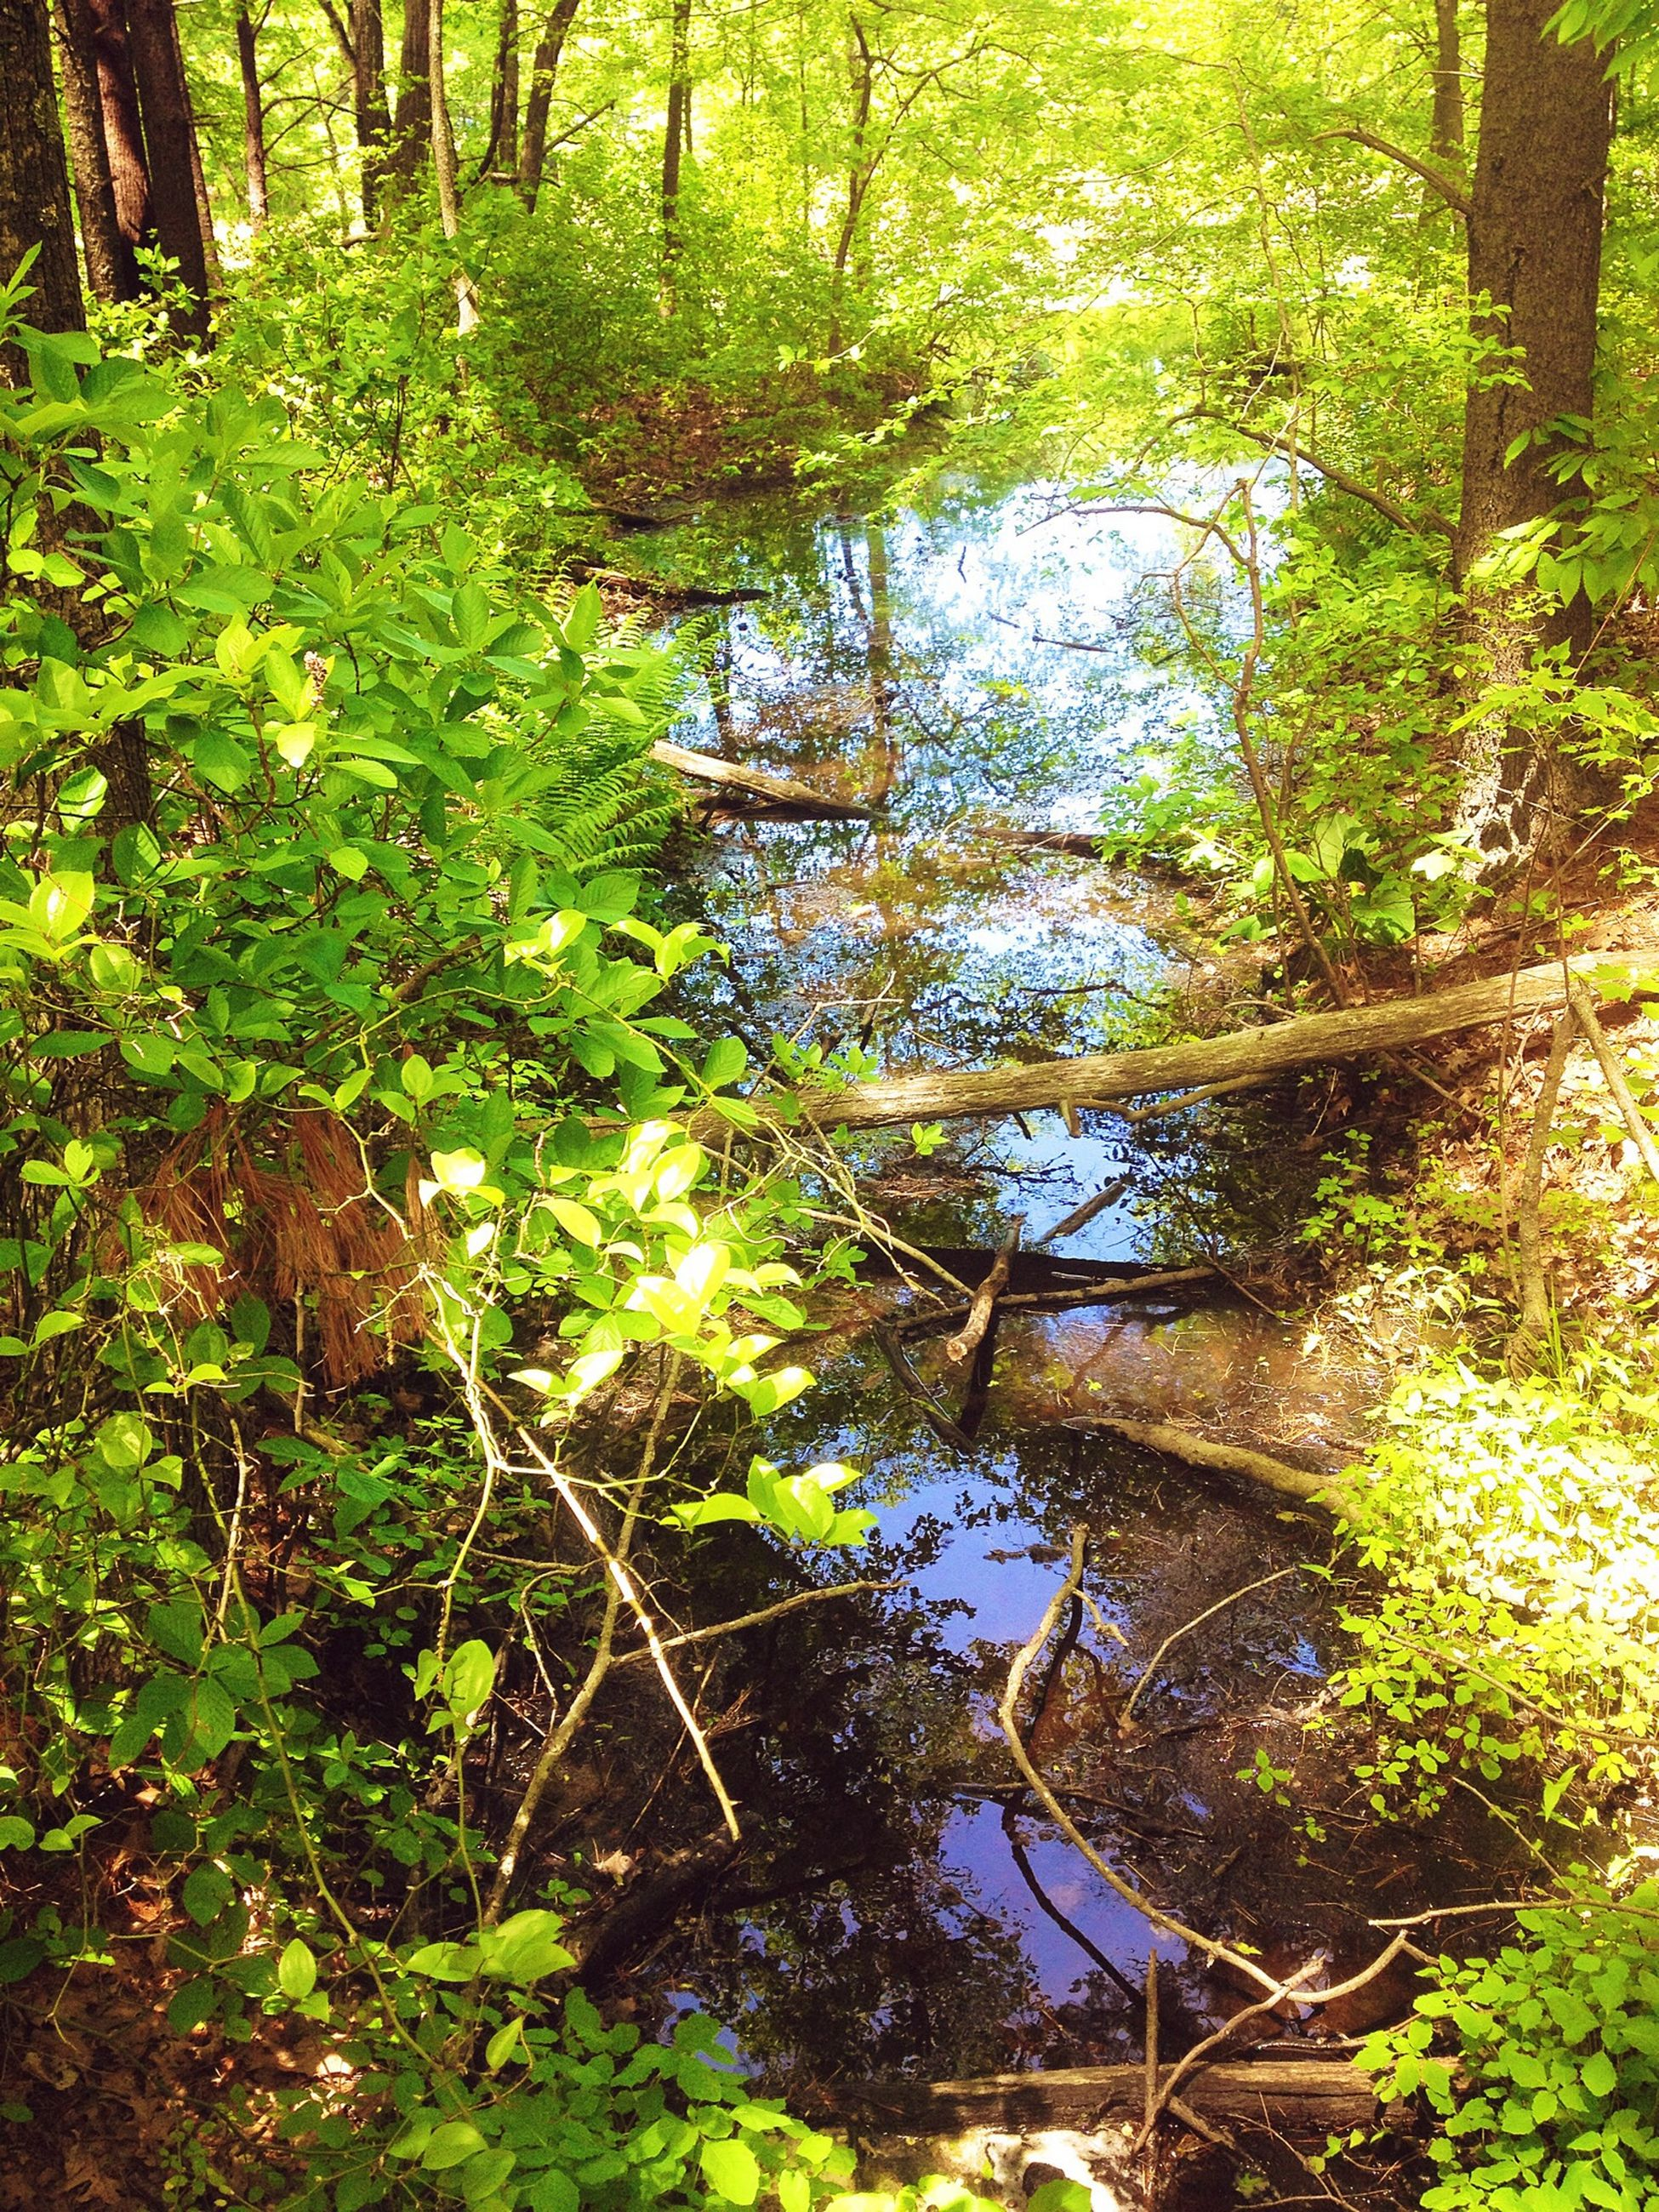 tree, growth, green color, forest, tranquility, tree trunk, nature, tranquil scene, beauty in nature, water, branch, scenics, lush foliage, moss, plant, green, woodland, idyllic, day, non-urban scene